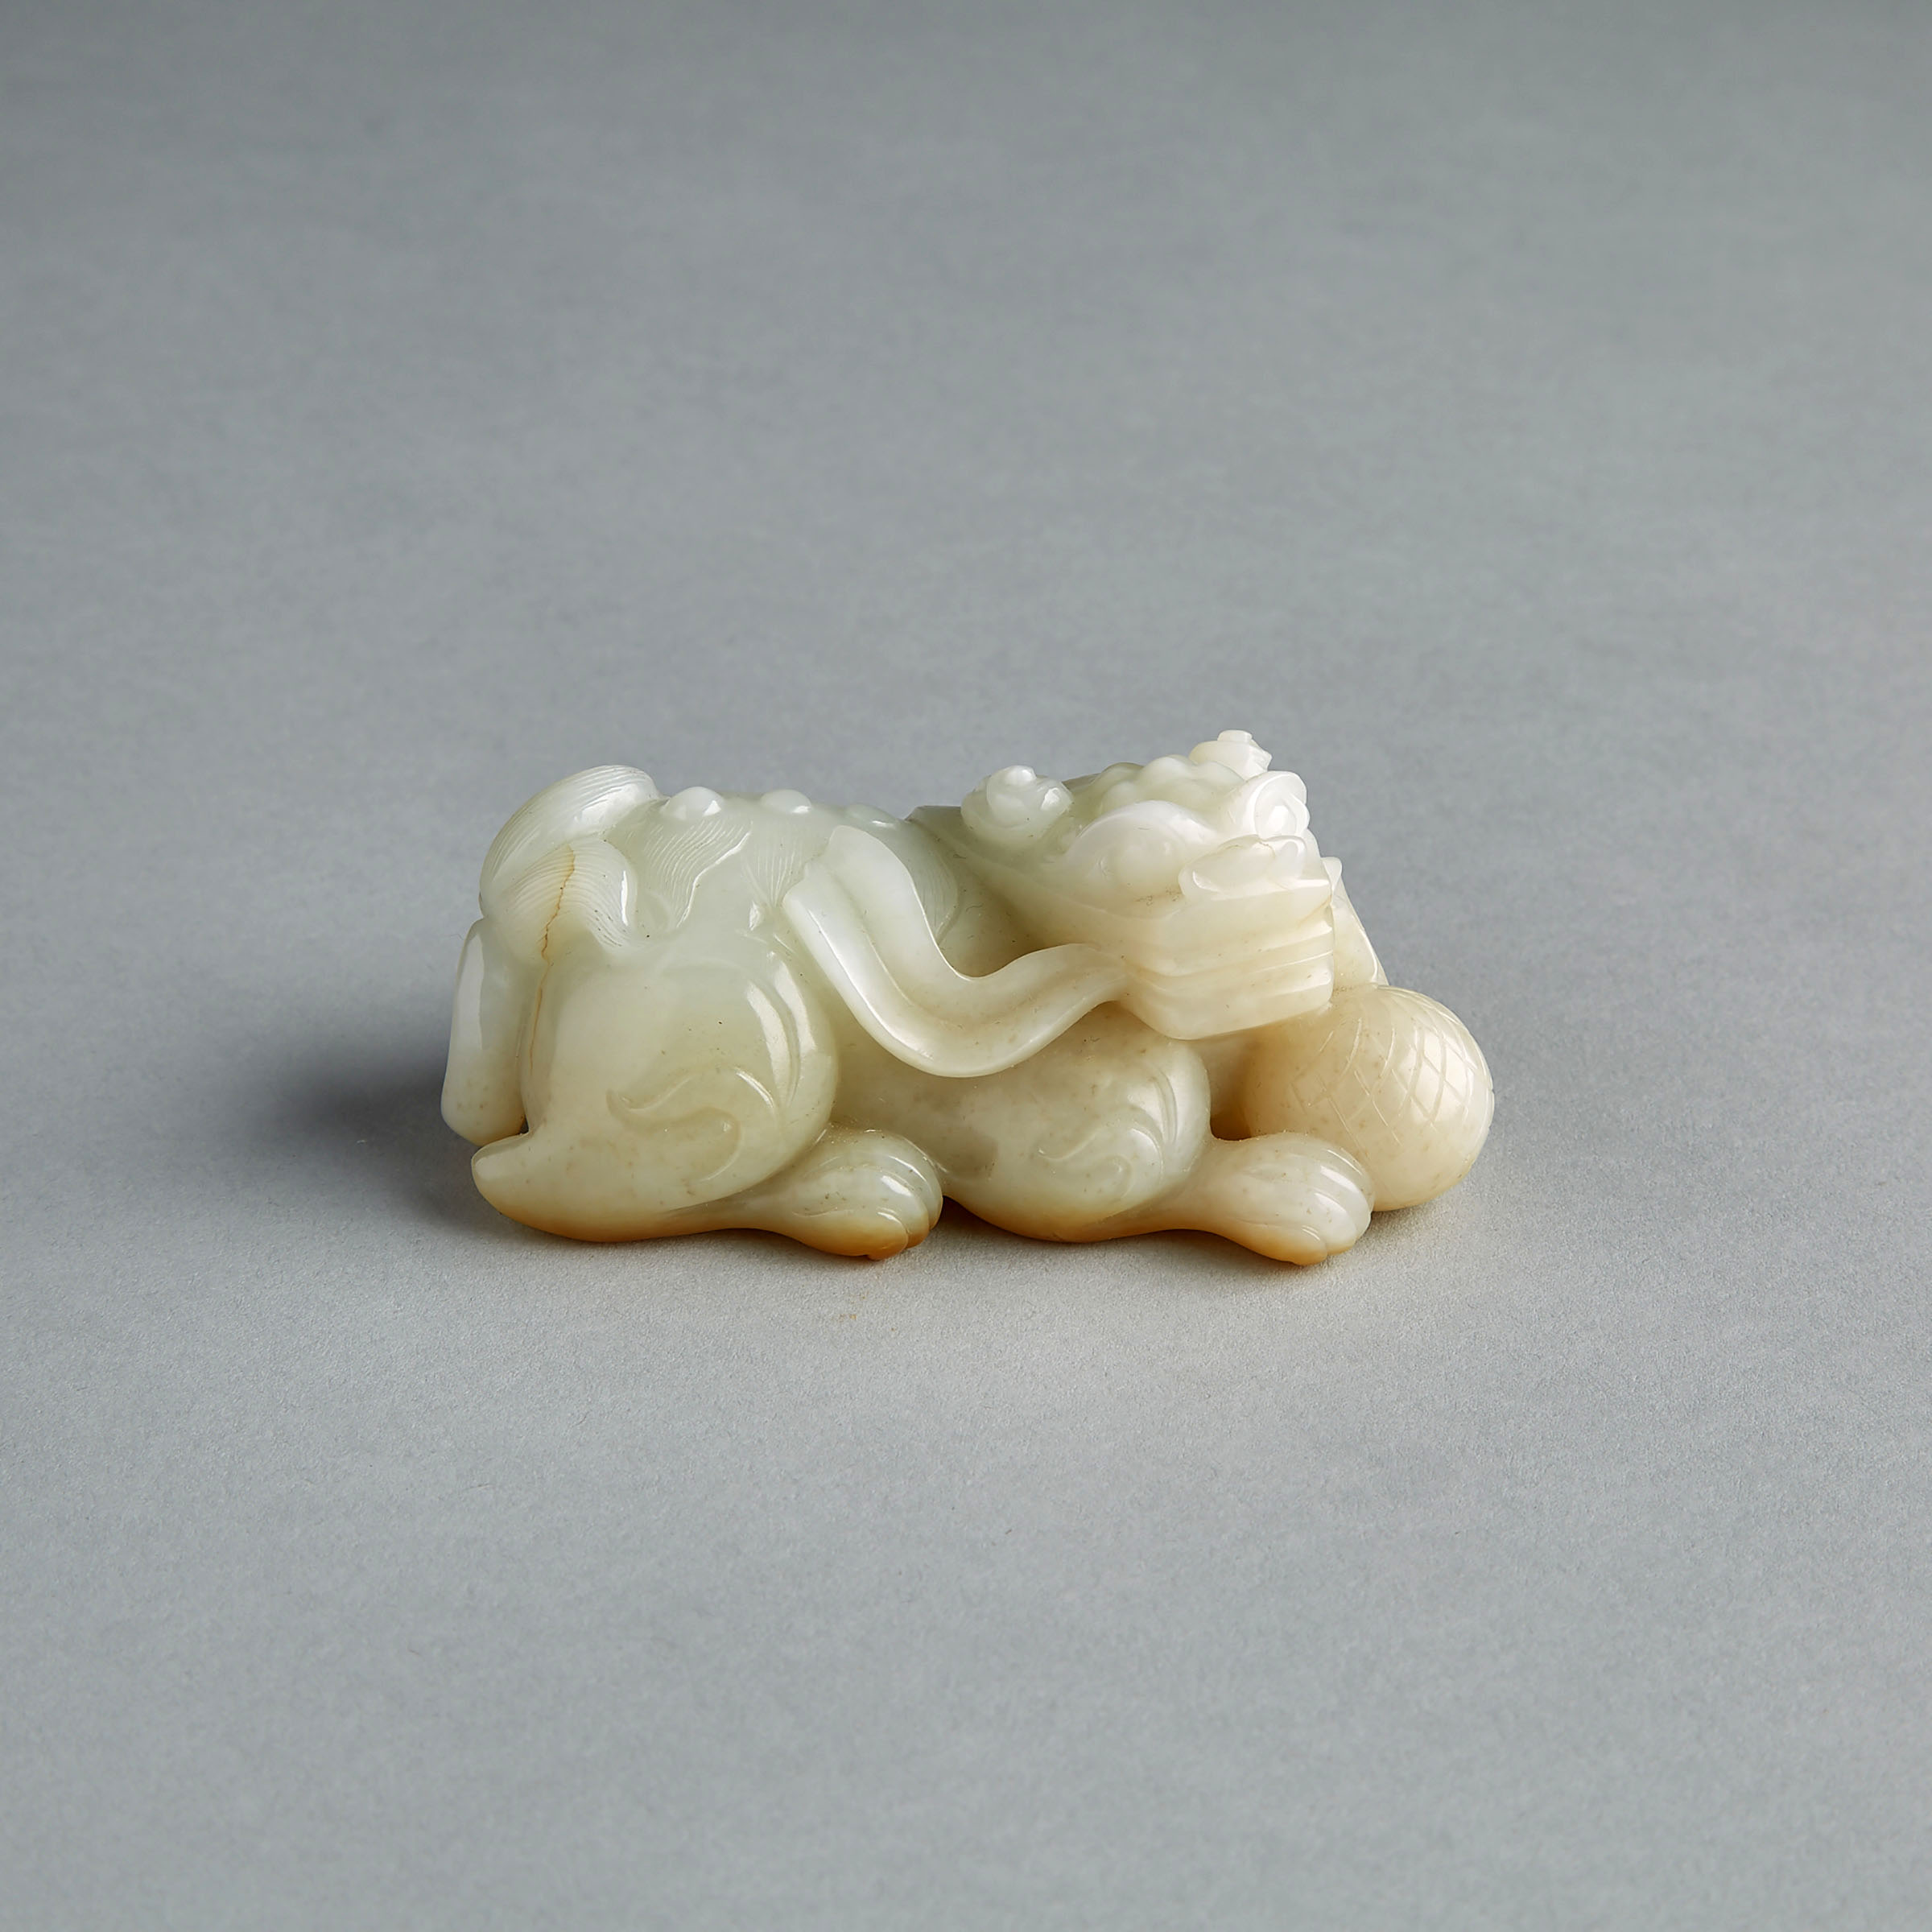 A White and Russet Jade Lion Carving